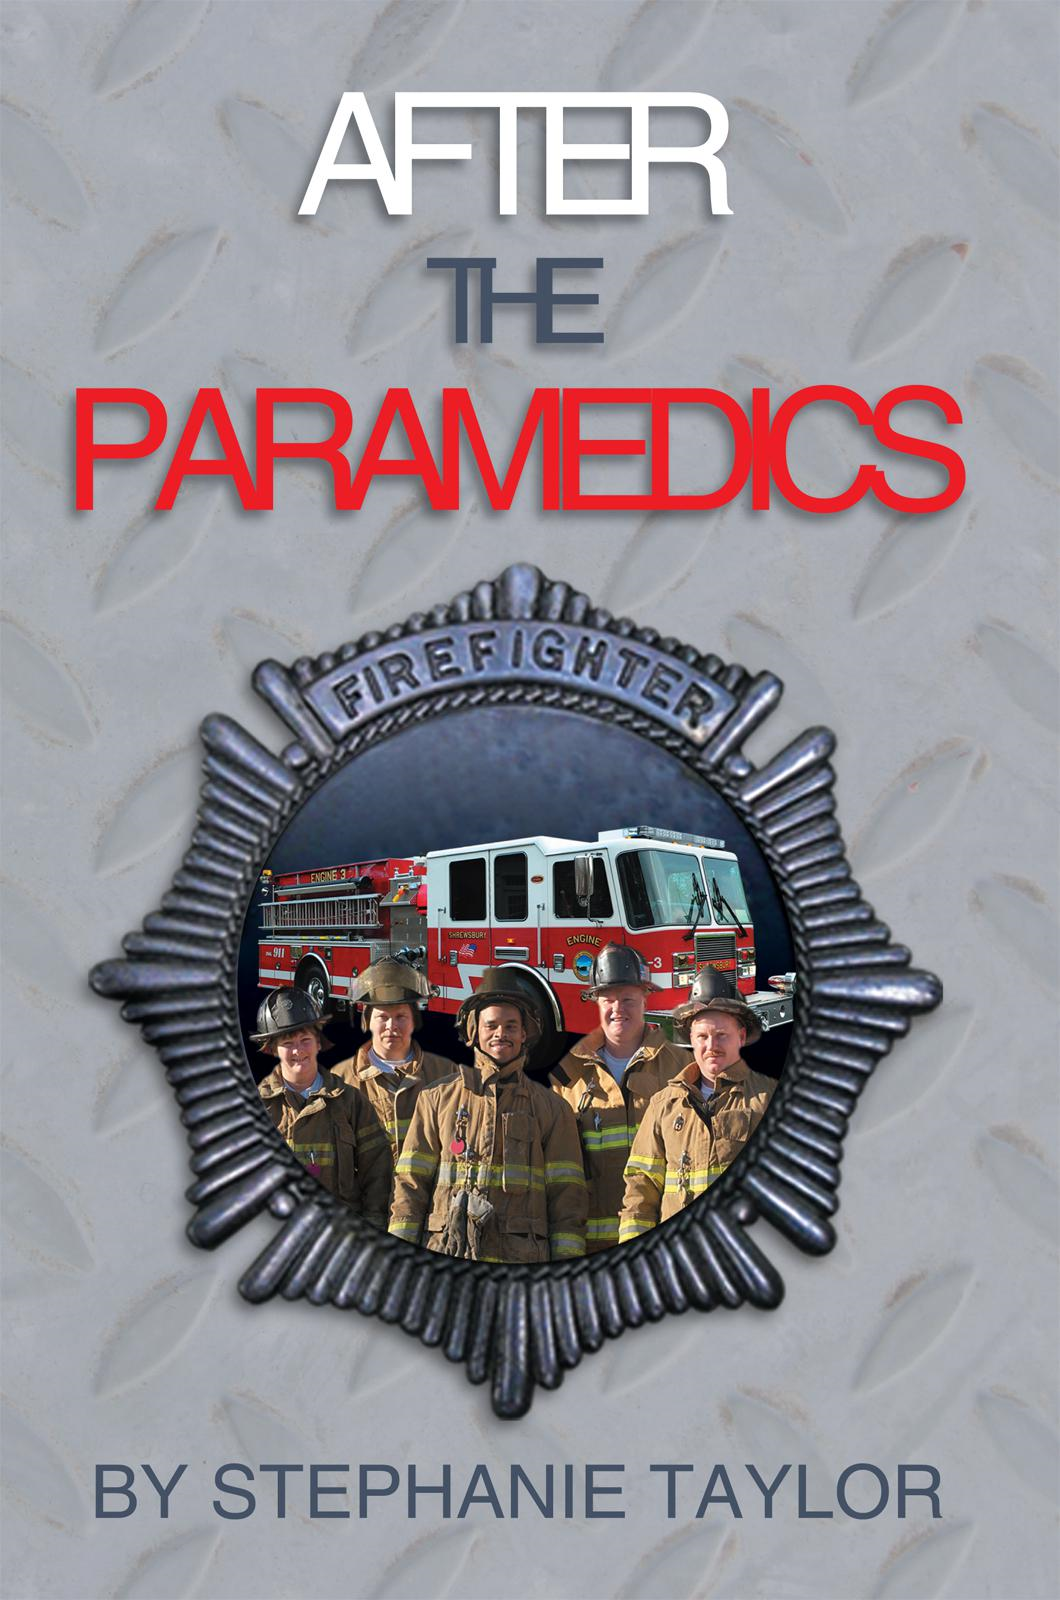 After the Paramedics